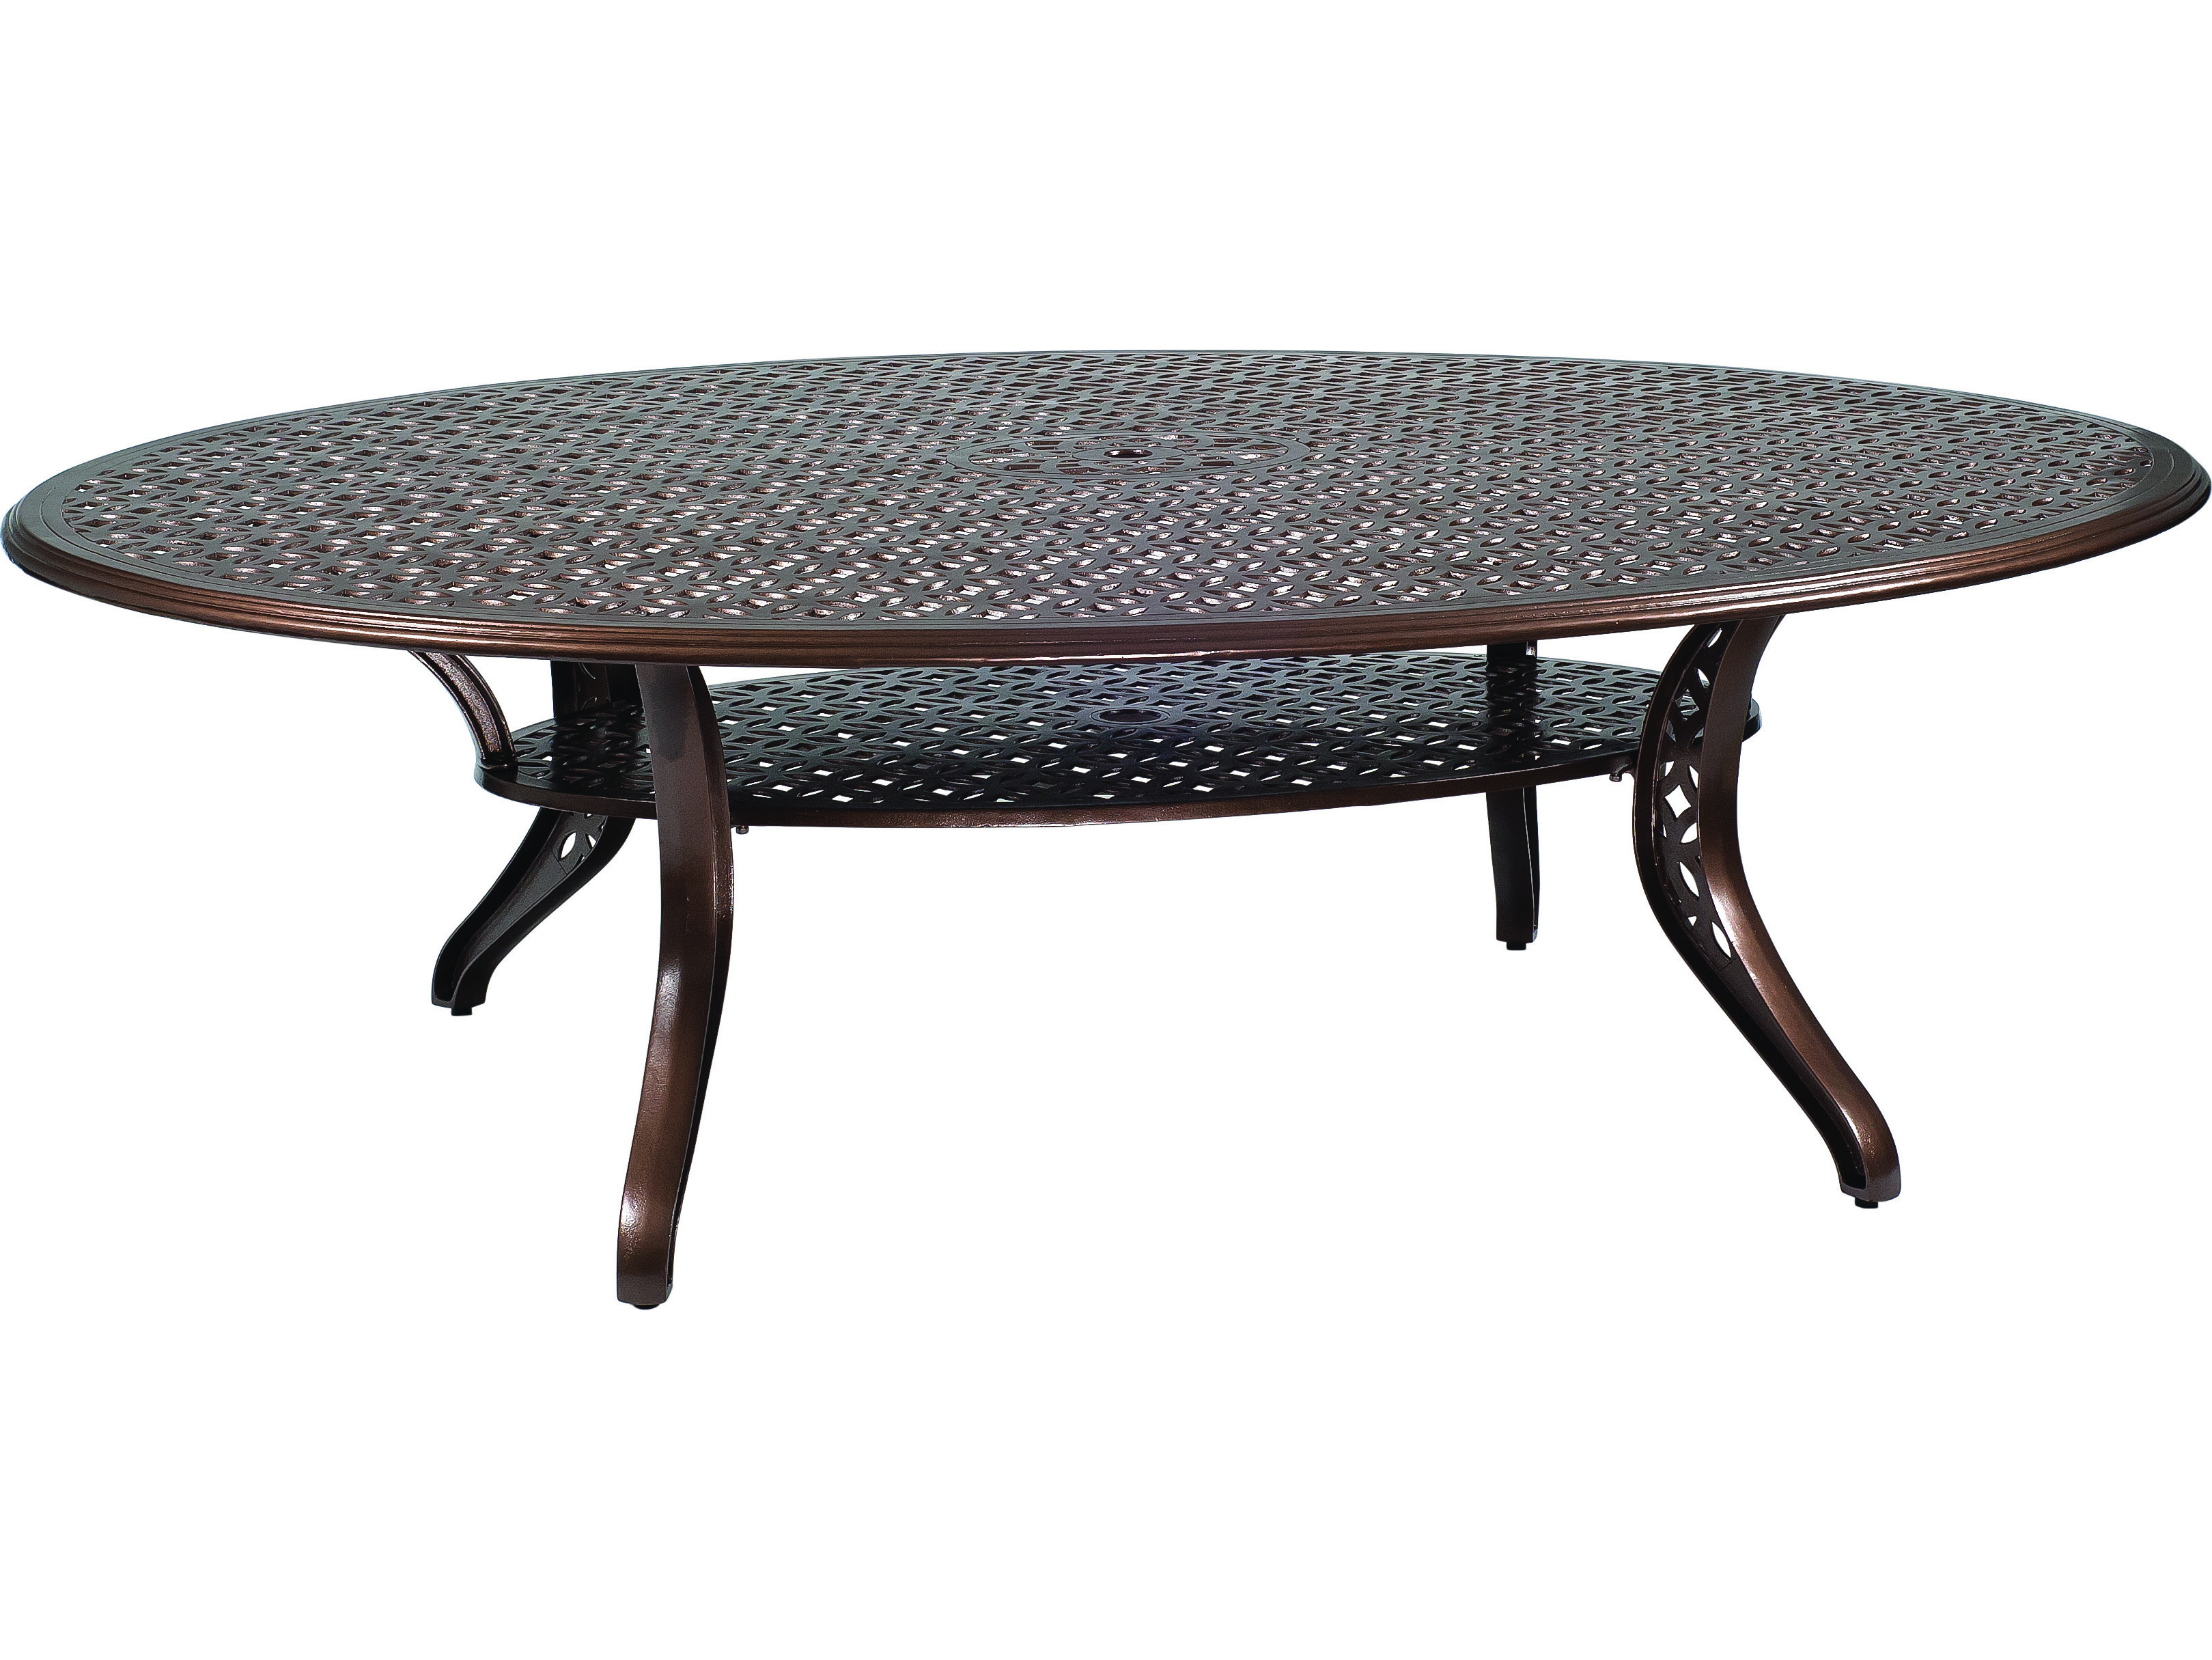 Woodard Casa Cast Aluminum 98 50 X 70 Oval Dining Table